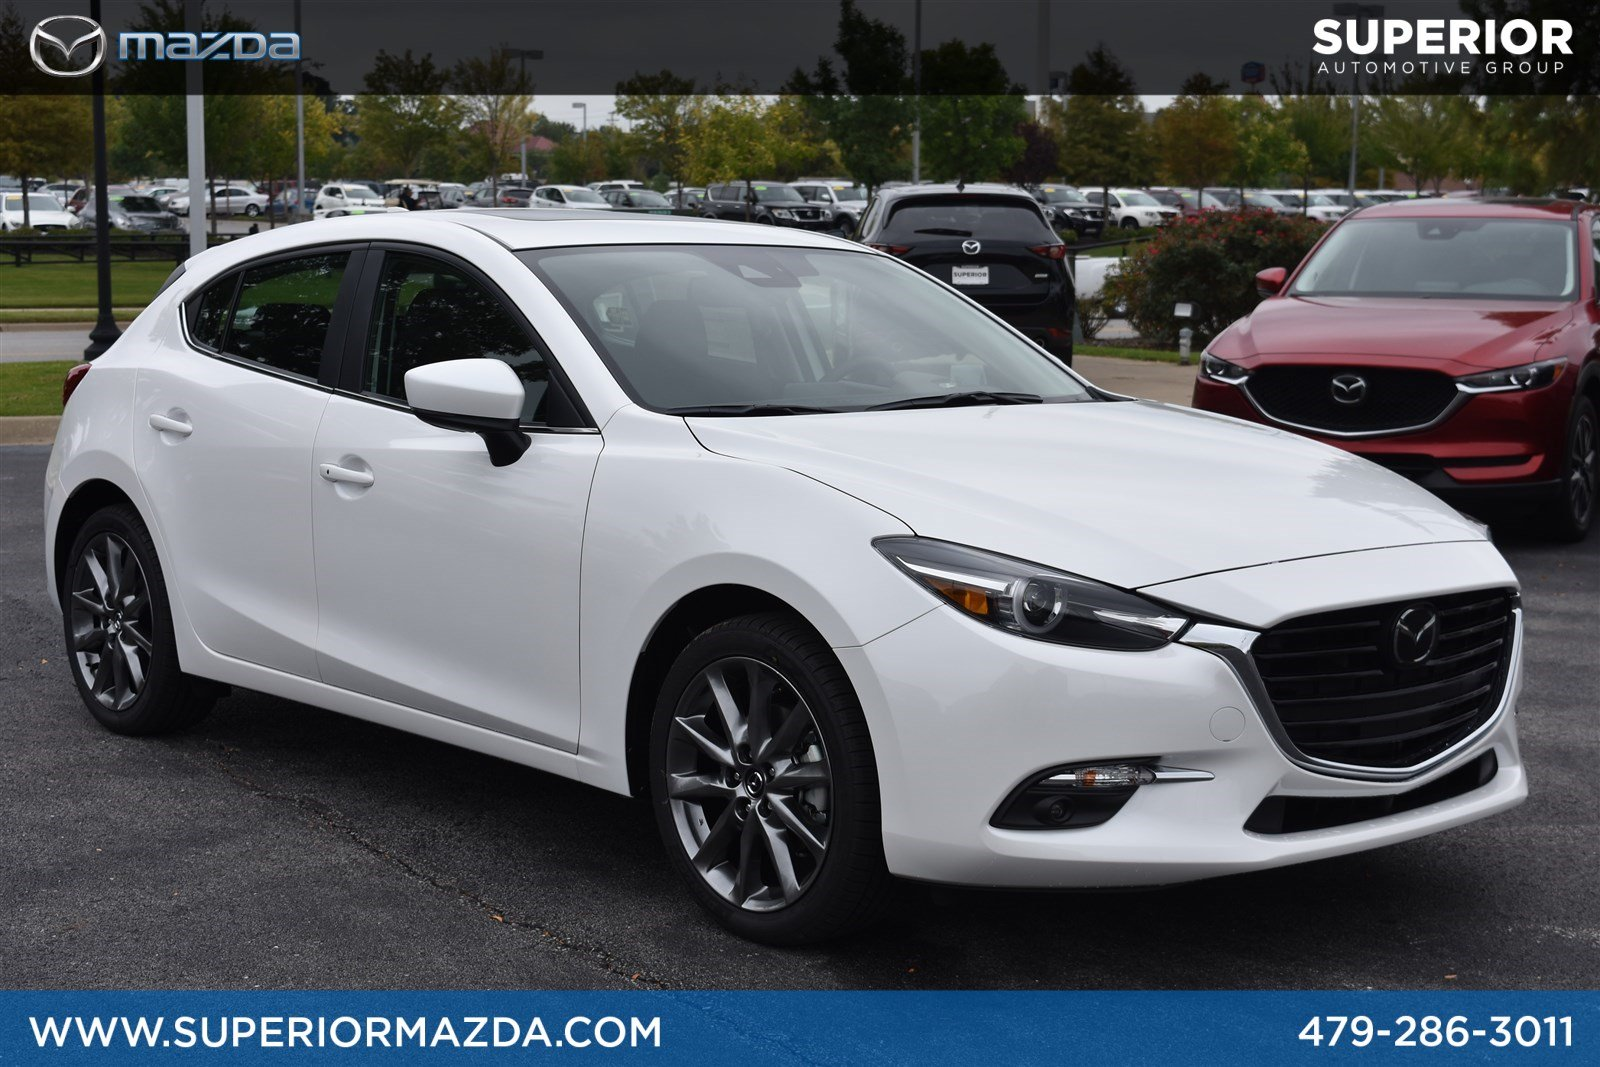 New 2018 Mazda Mazda3 5 Door Grand Touring Hatchback In Bentonville